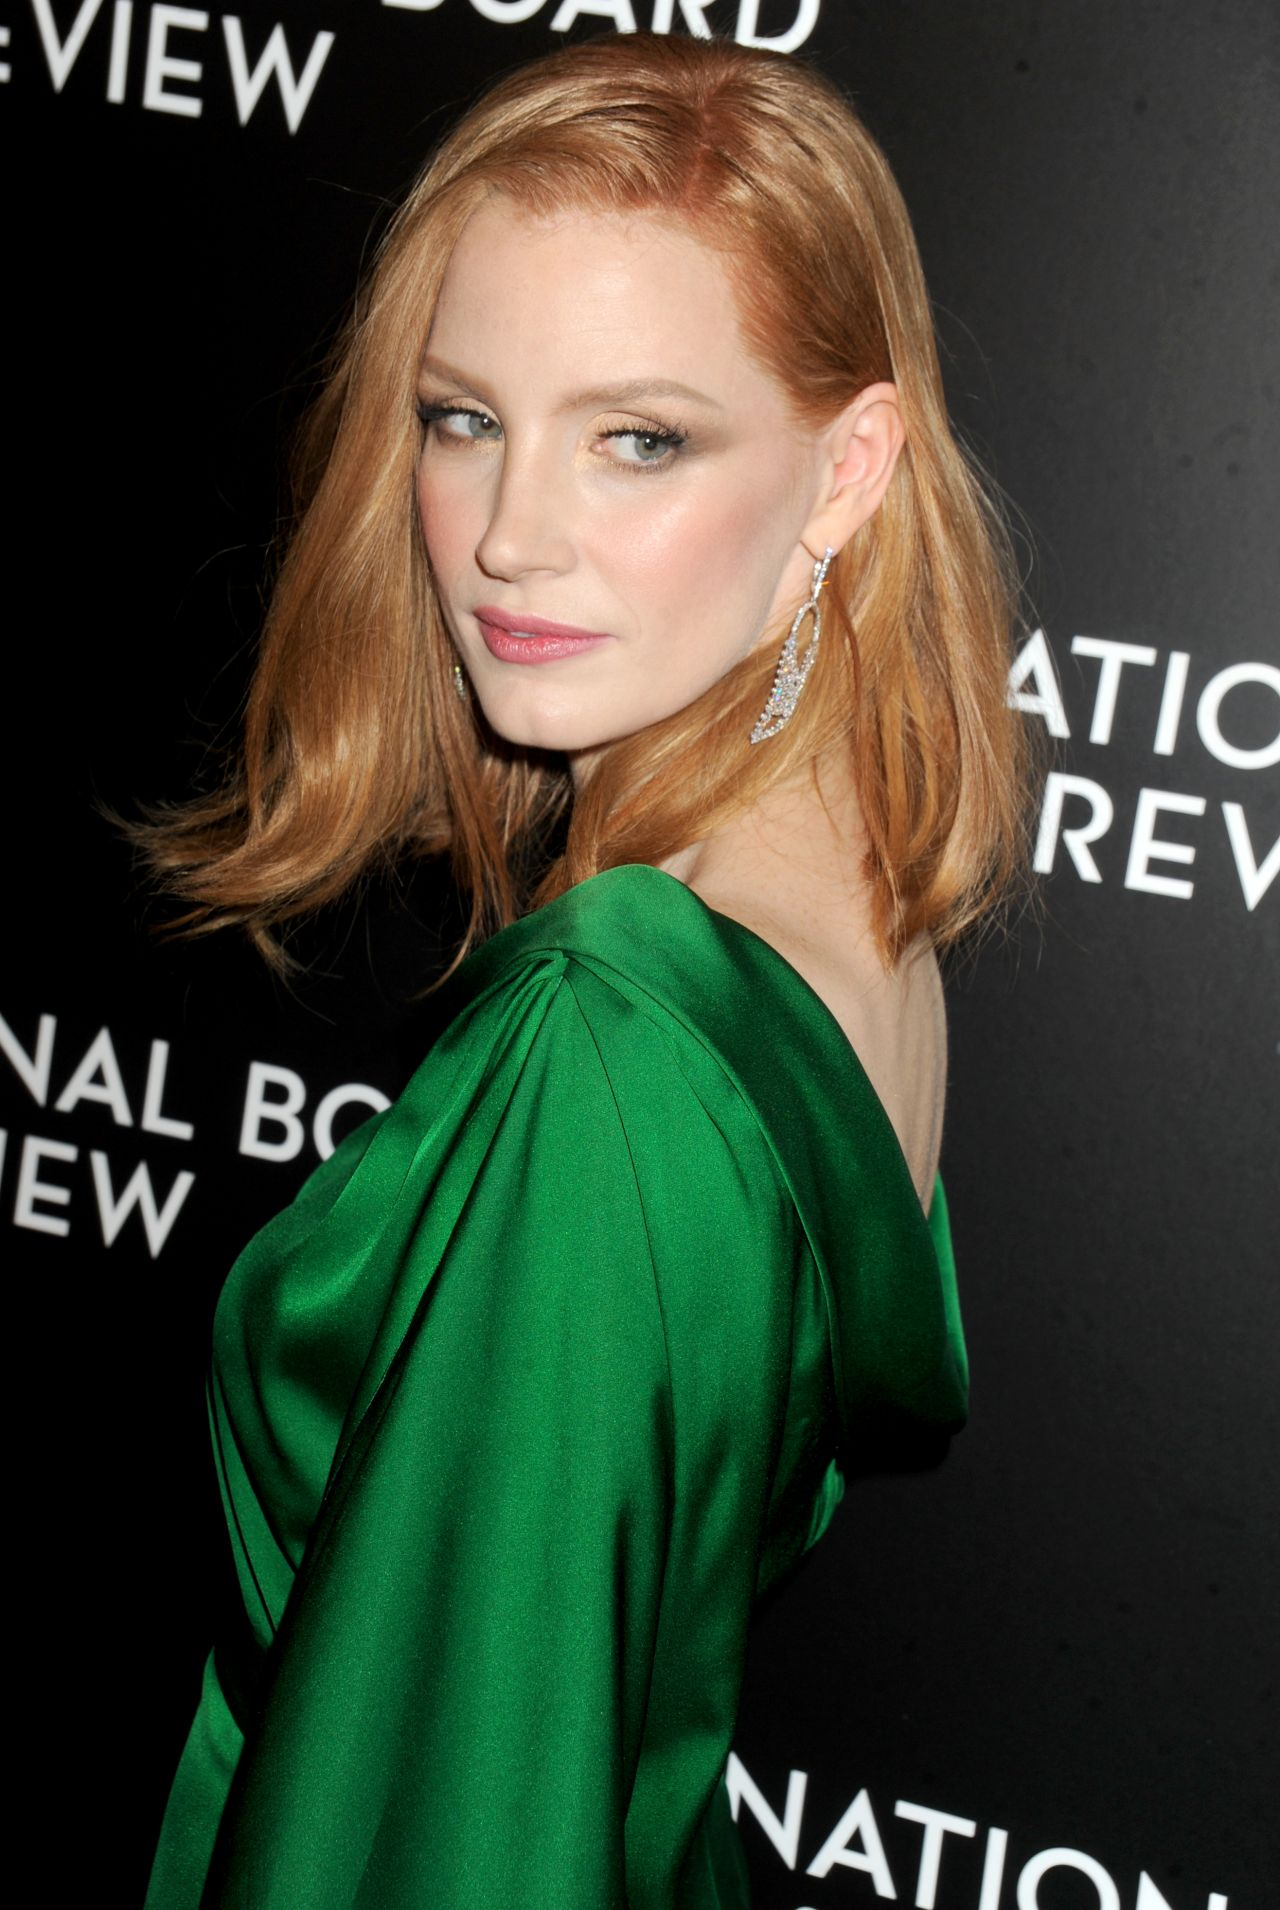 jessica-chastain-2015-national-board-of-review-gala-in-new-york-city-10